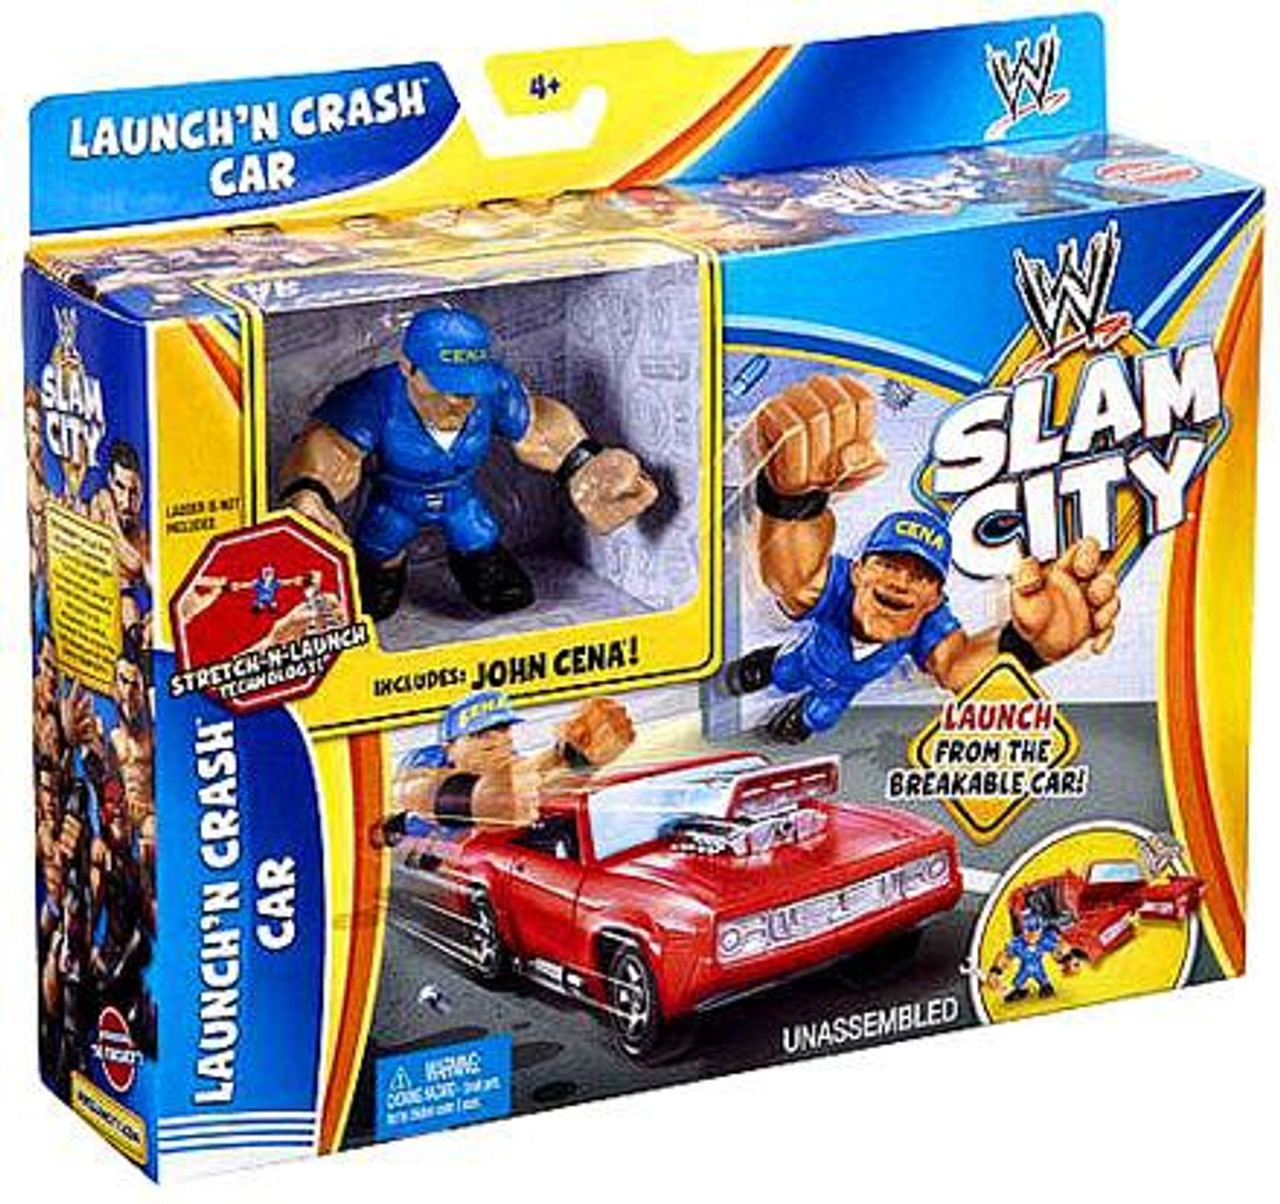 WWE Wrestling Slam City Launch'N Crash Car Mini Figure Playset